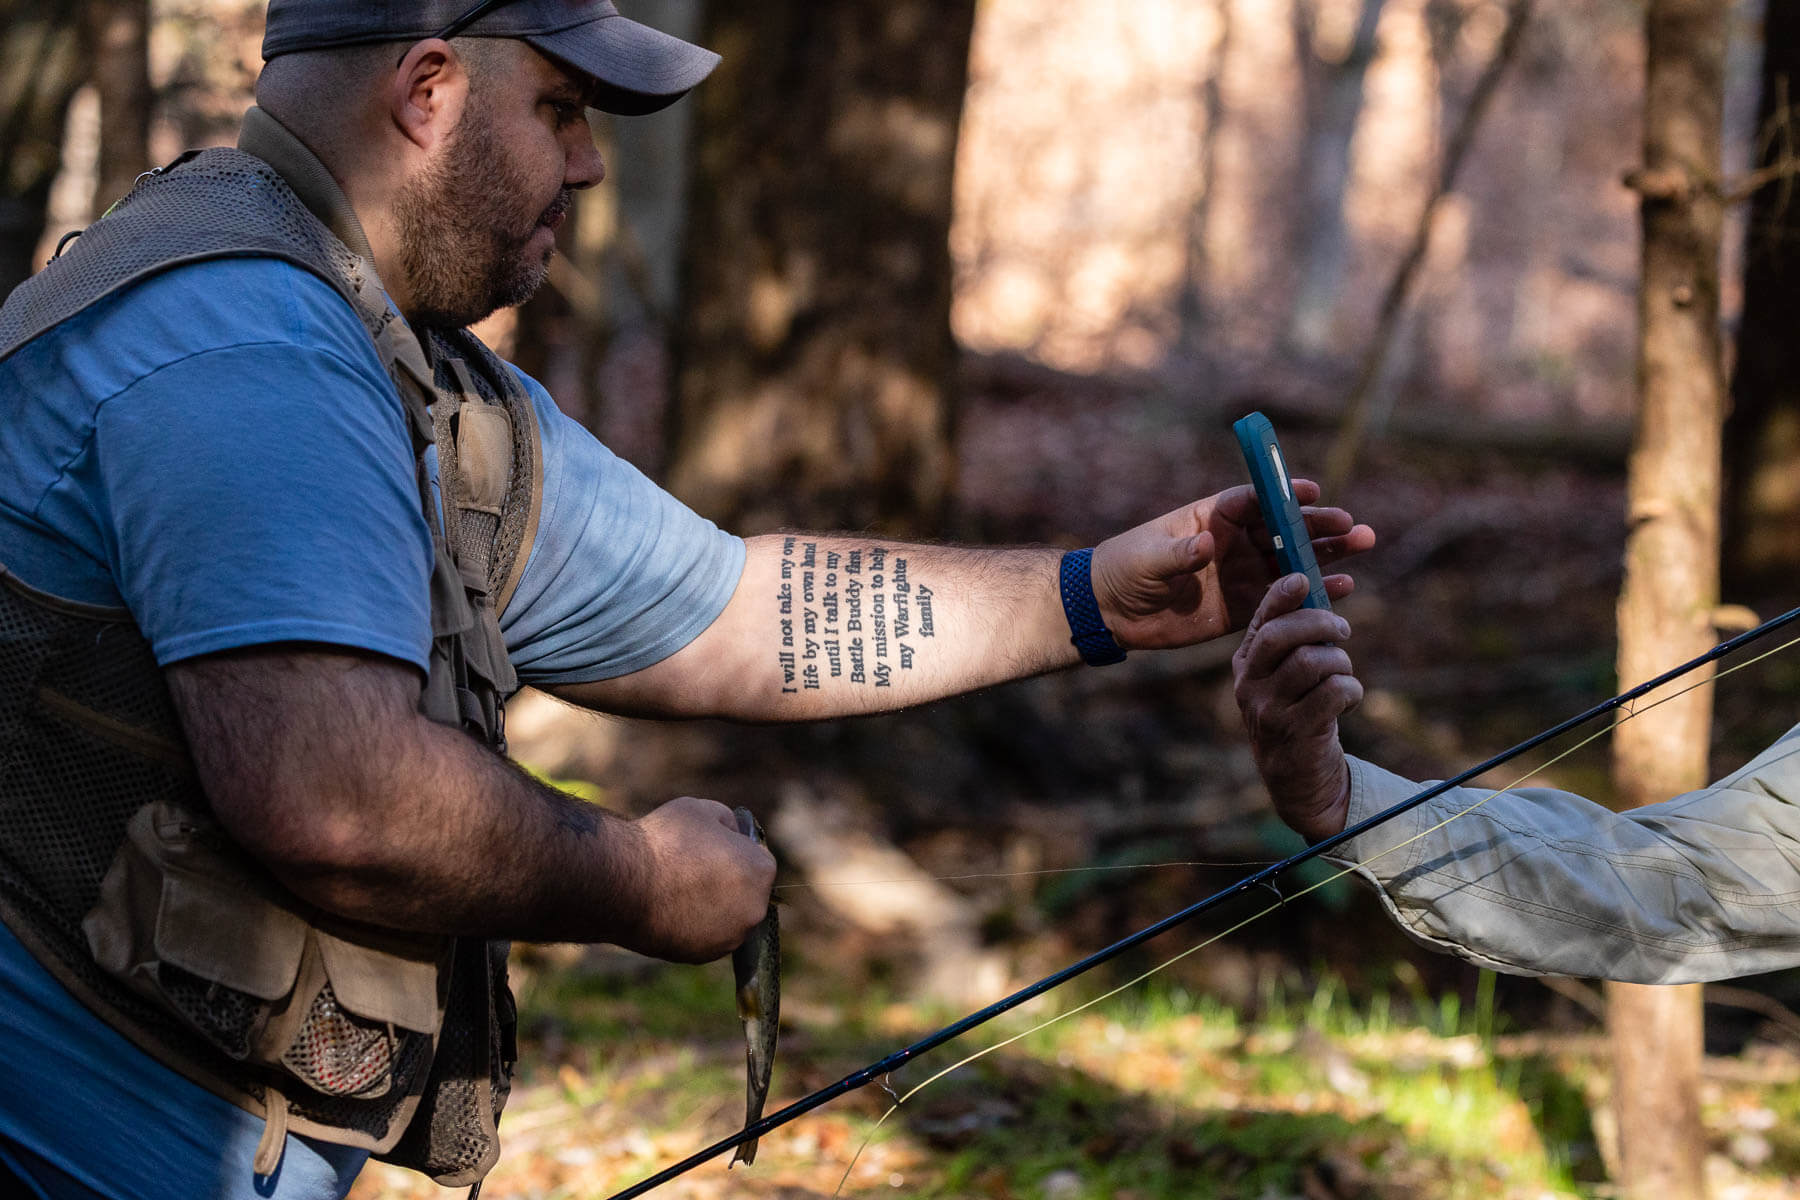 A male veteran looks at a photo a friend took of the fish he caught.